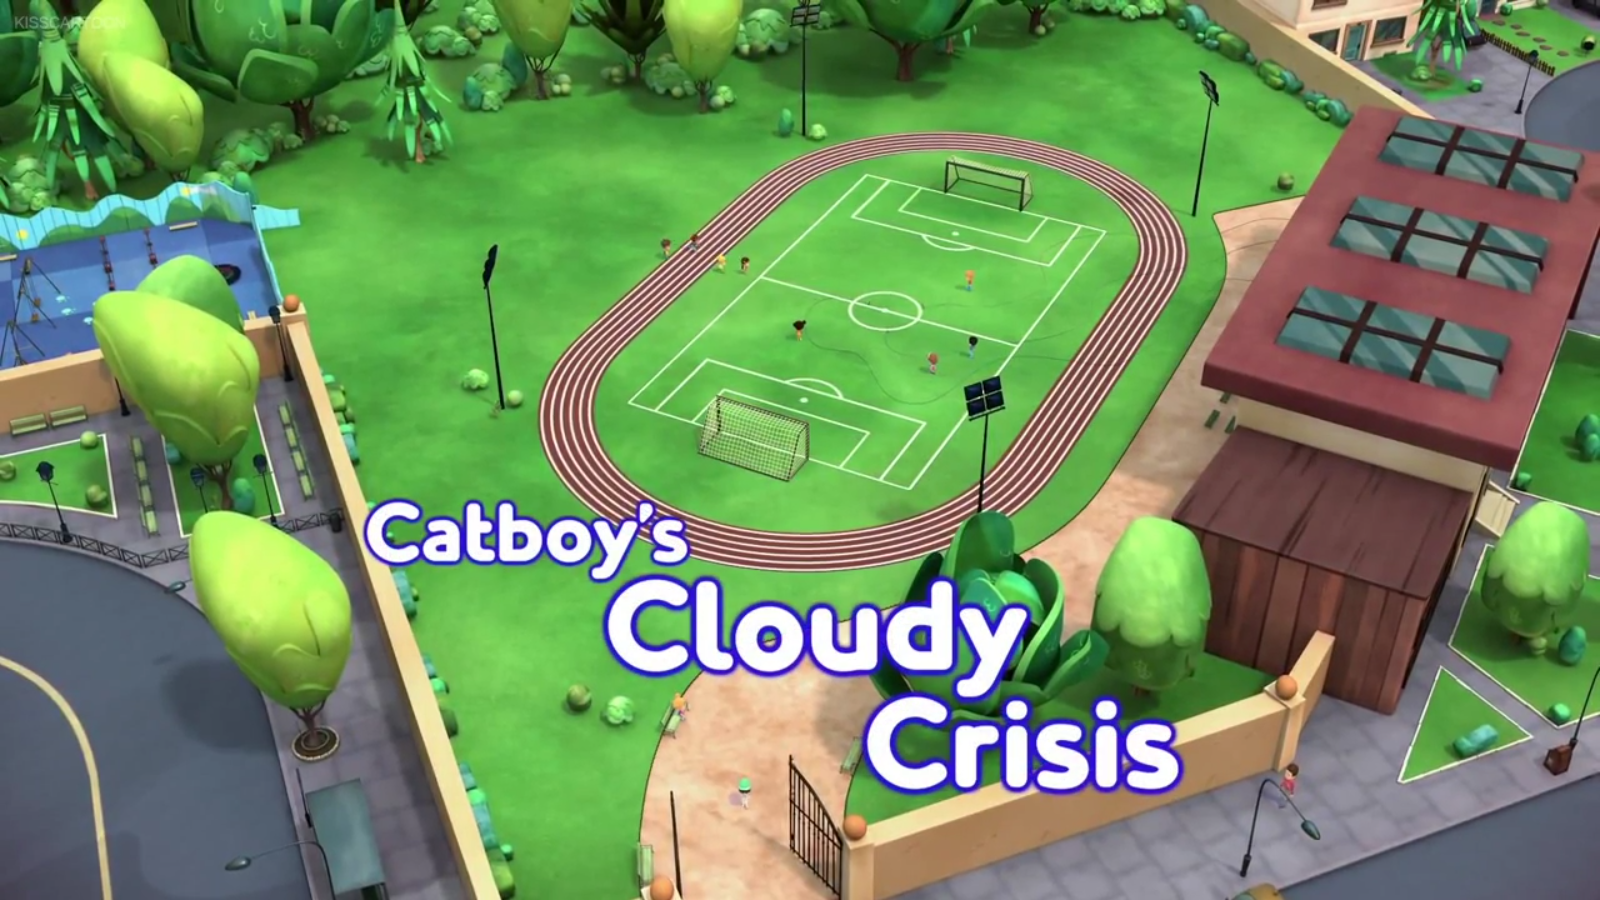 Catboy's Cloudy Crisis